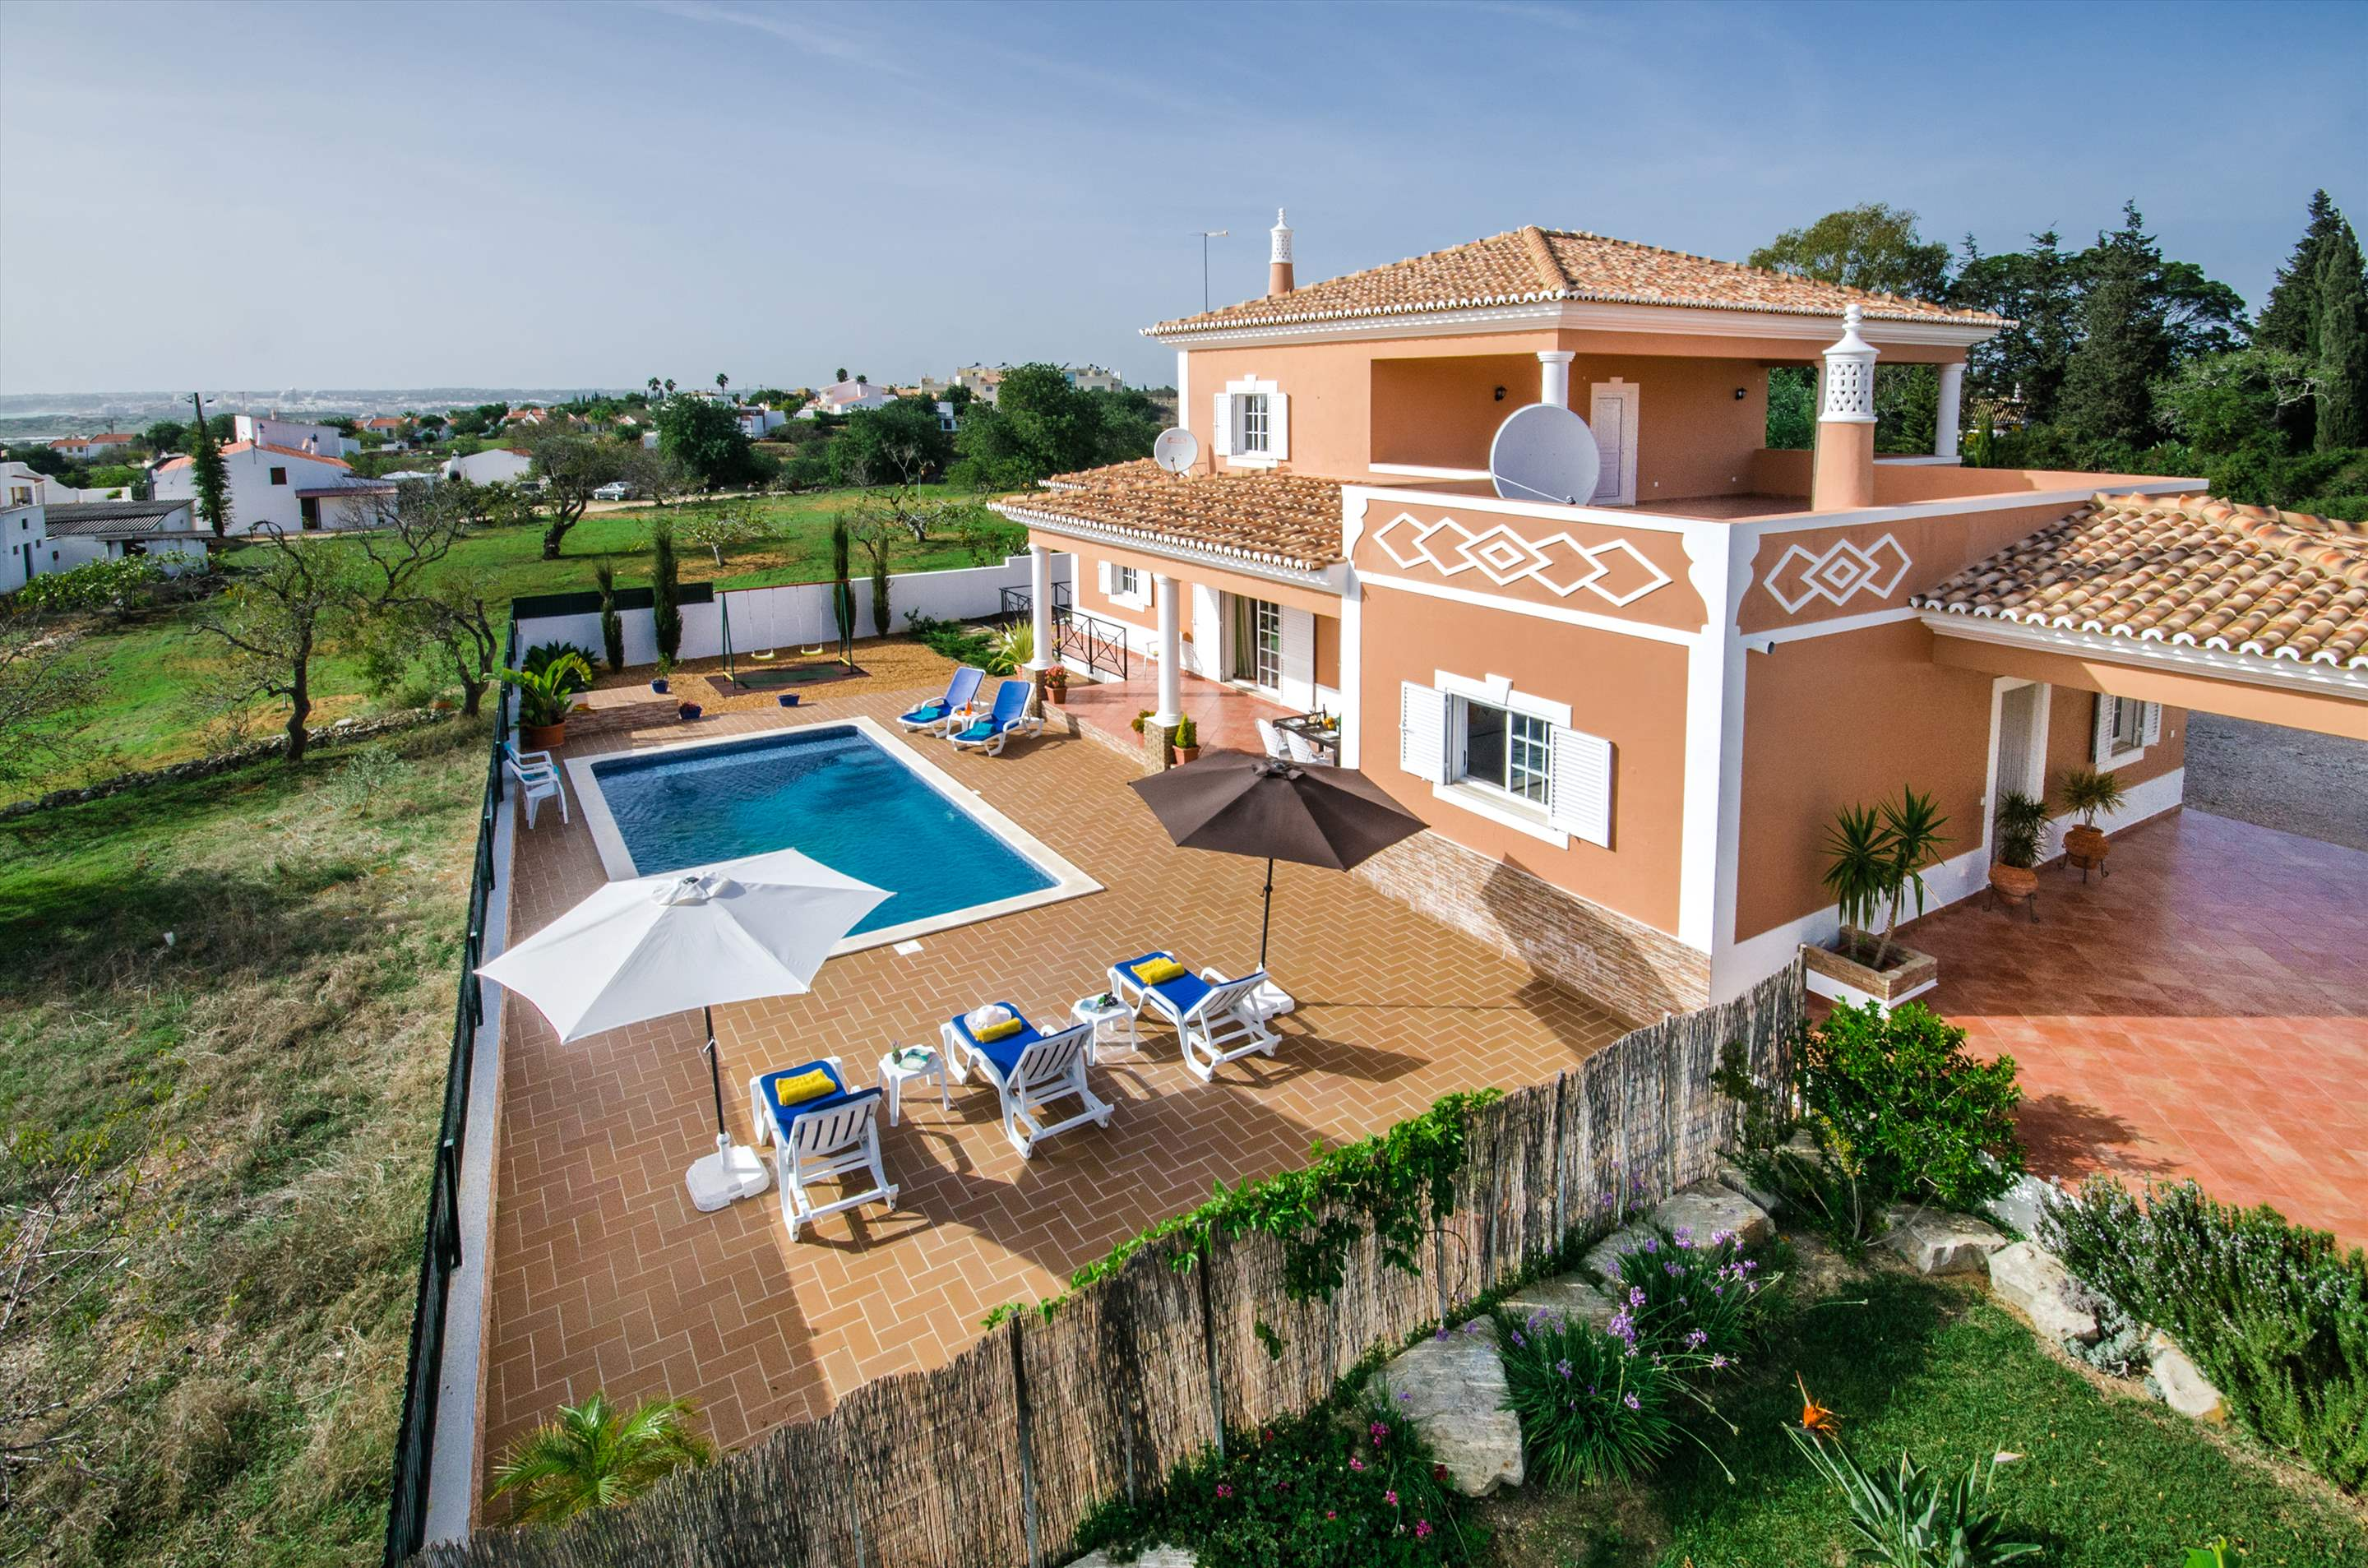 Casa Laura, 3 bedroom villa in Gale, Vale da Parra and Guia, Algarve Photo #15